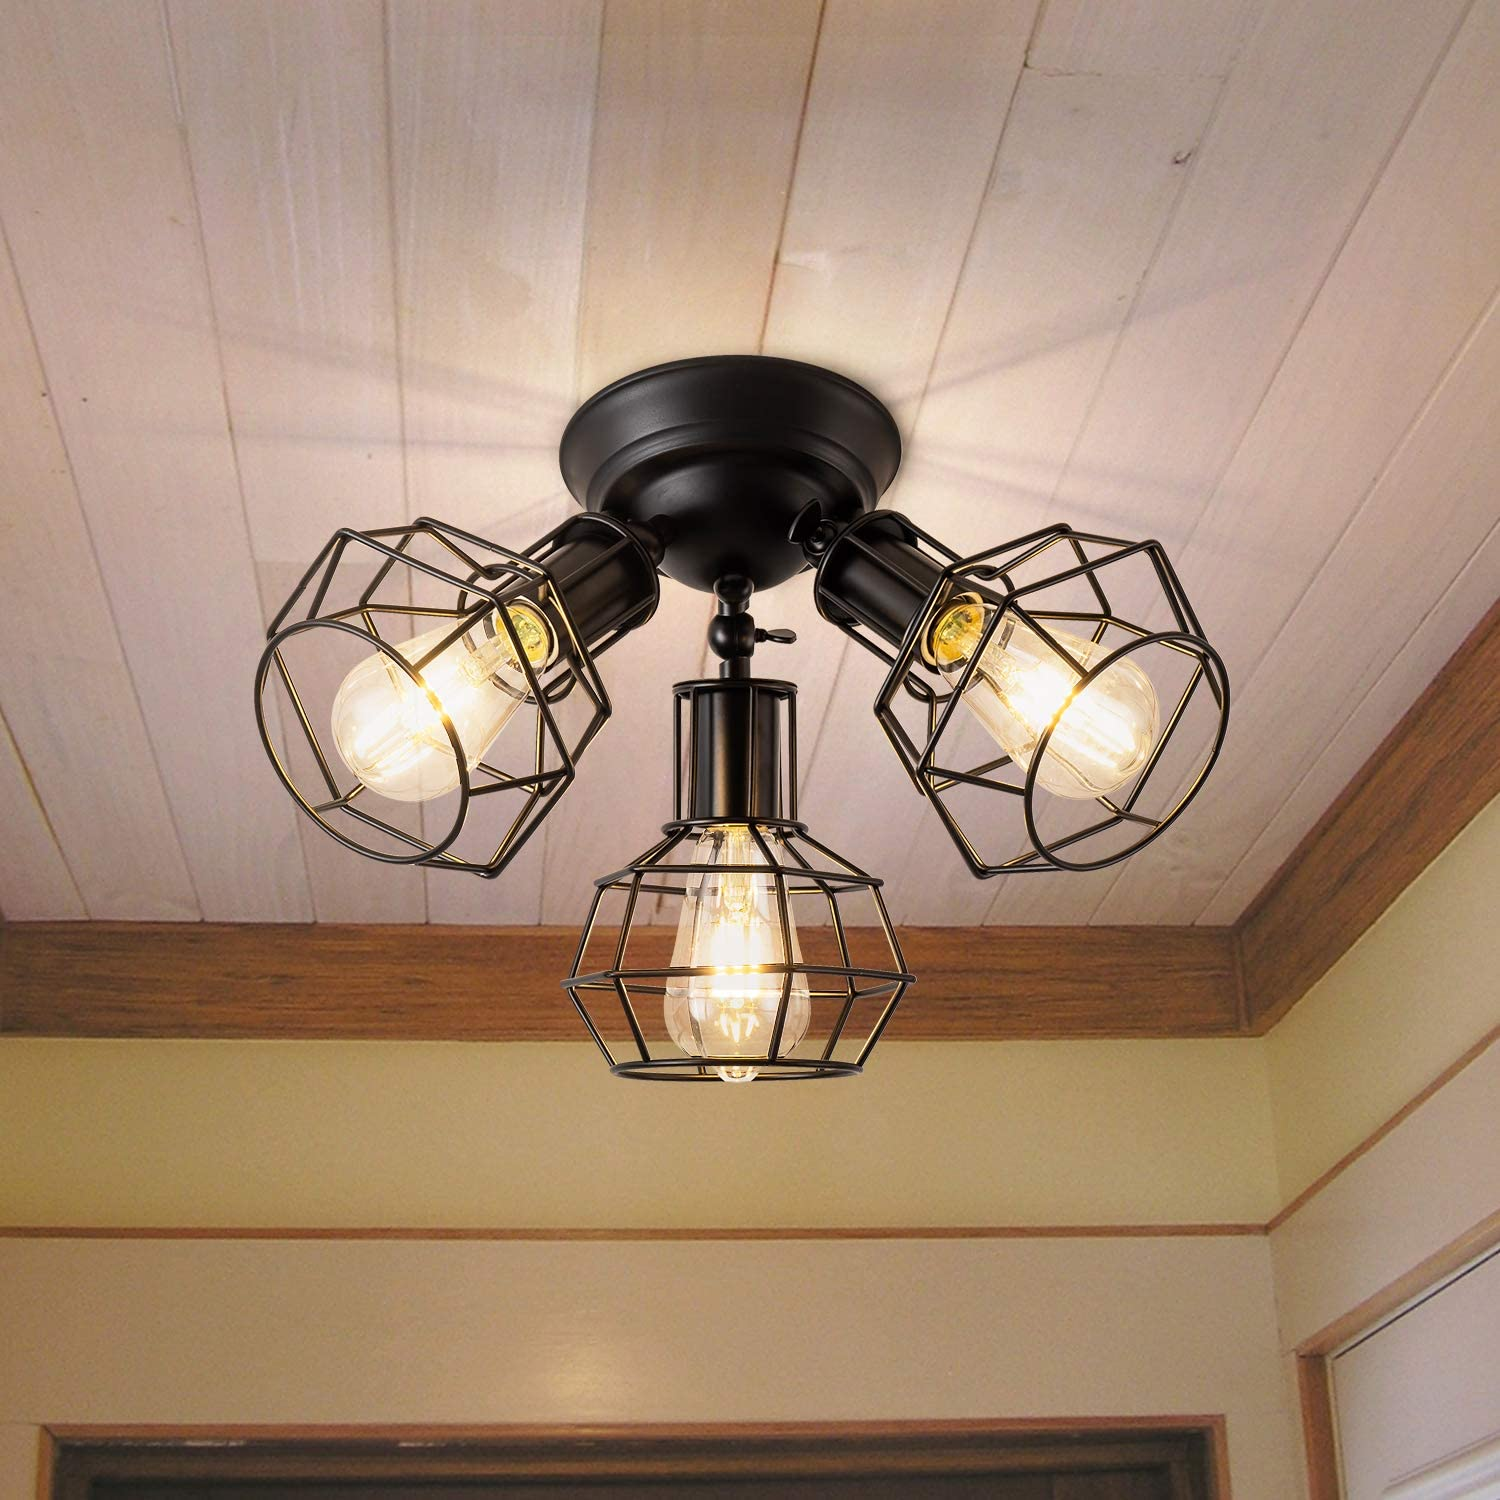 Rustic SemiFlushMountCeilingLight Industrial Black Metal Cage Ceiling Light Fixture 3-Light Adjustable Vintage Ceiling Lamp for Hallway Stairway Porch Entryway Kitchen Bedroom Laundry Farmhouse